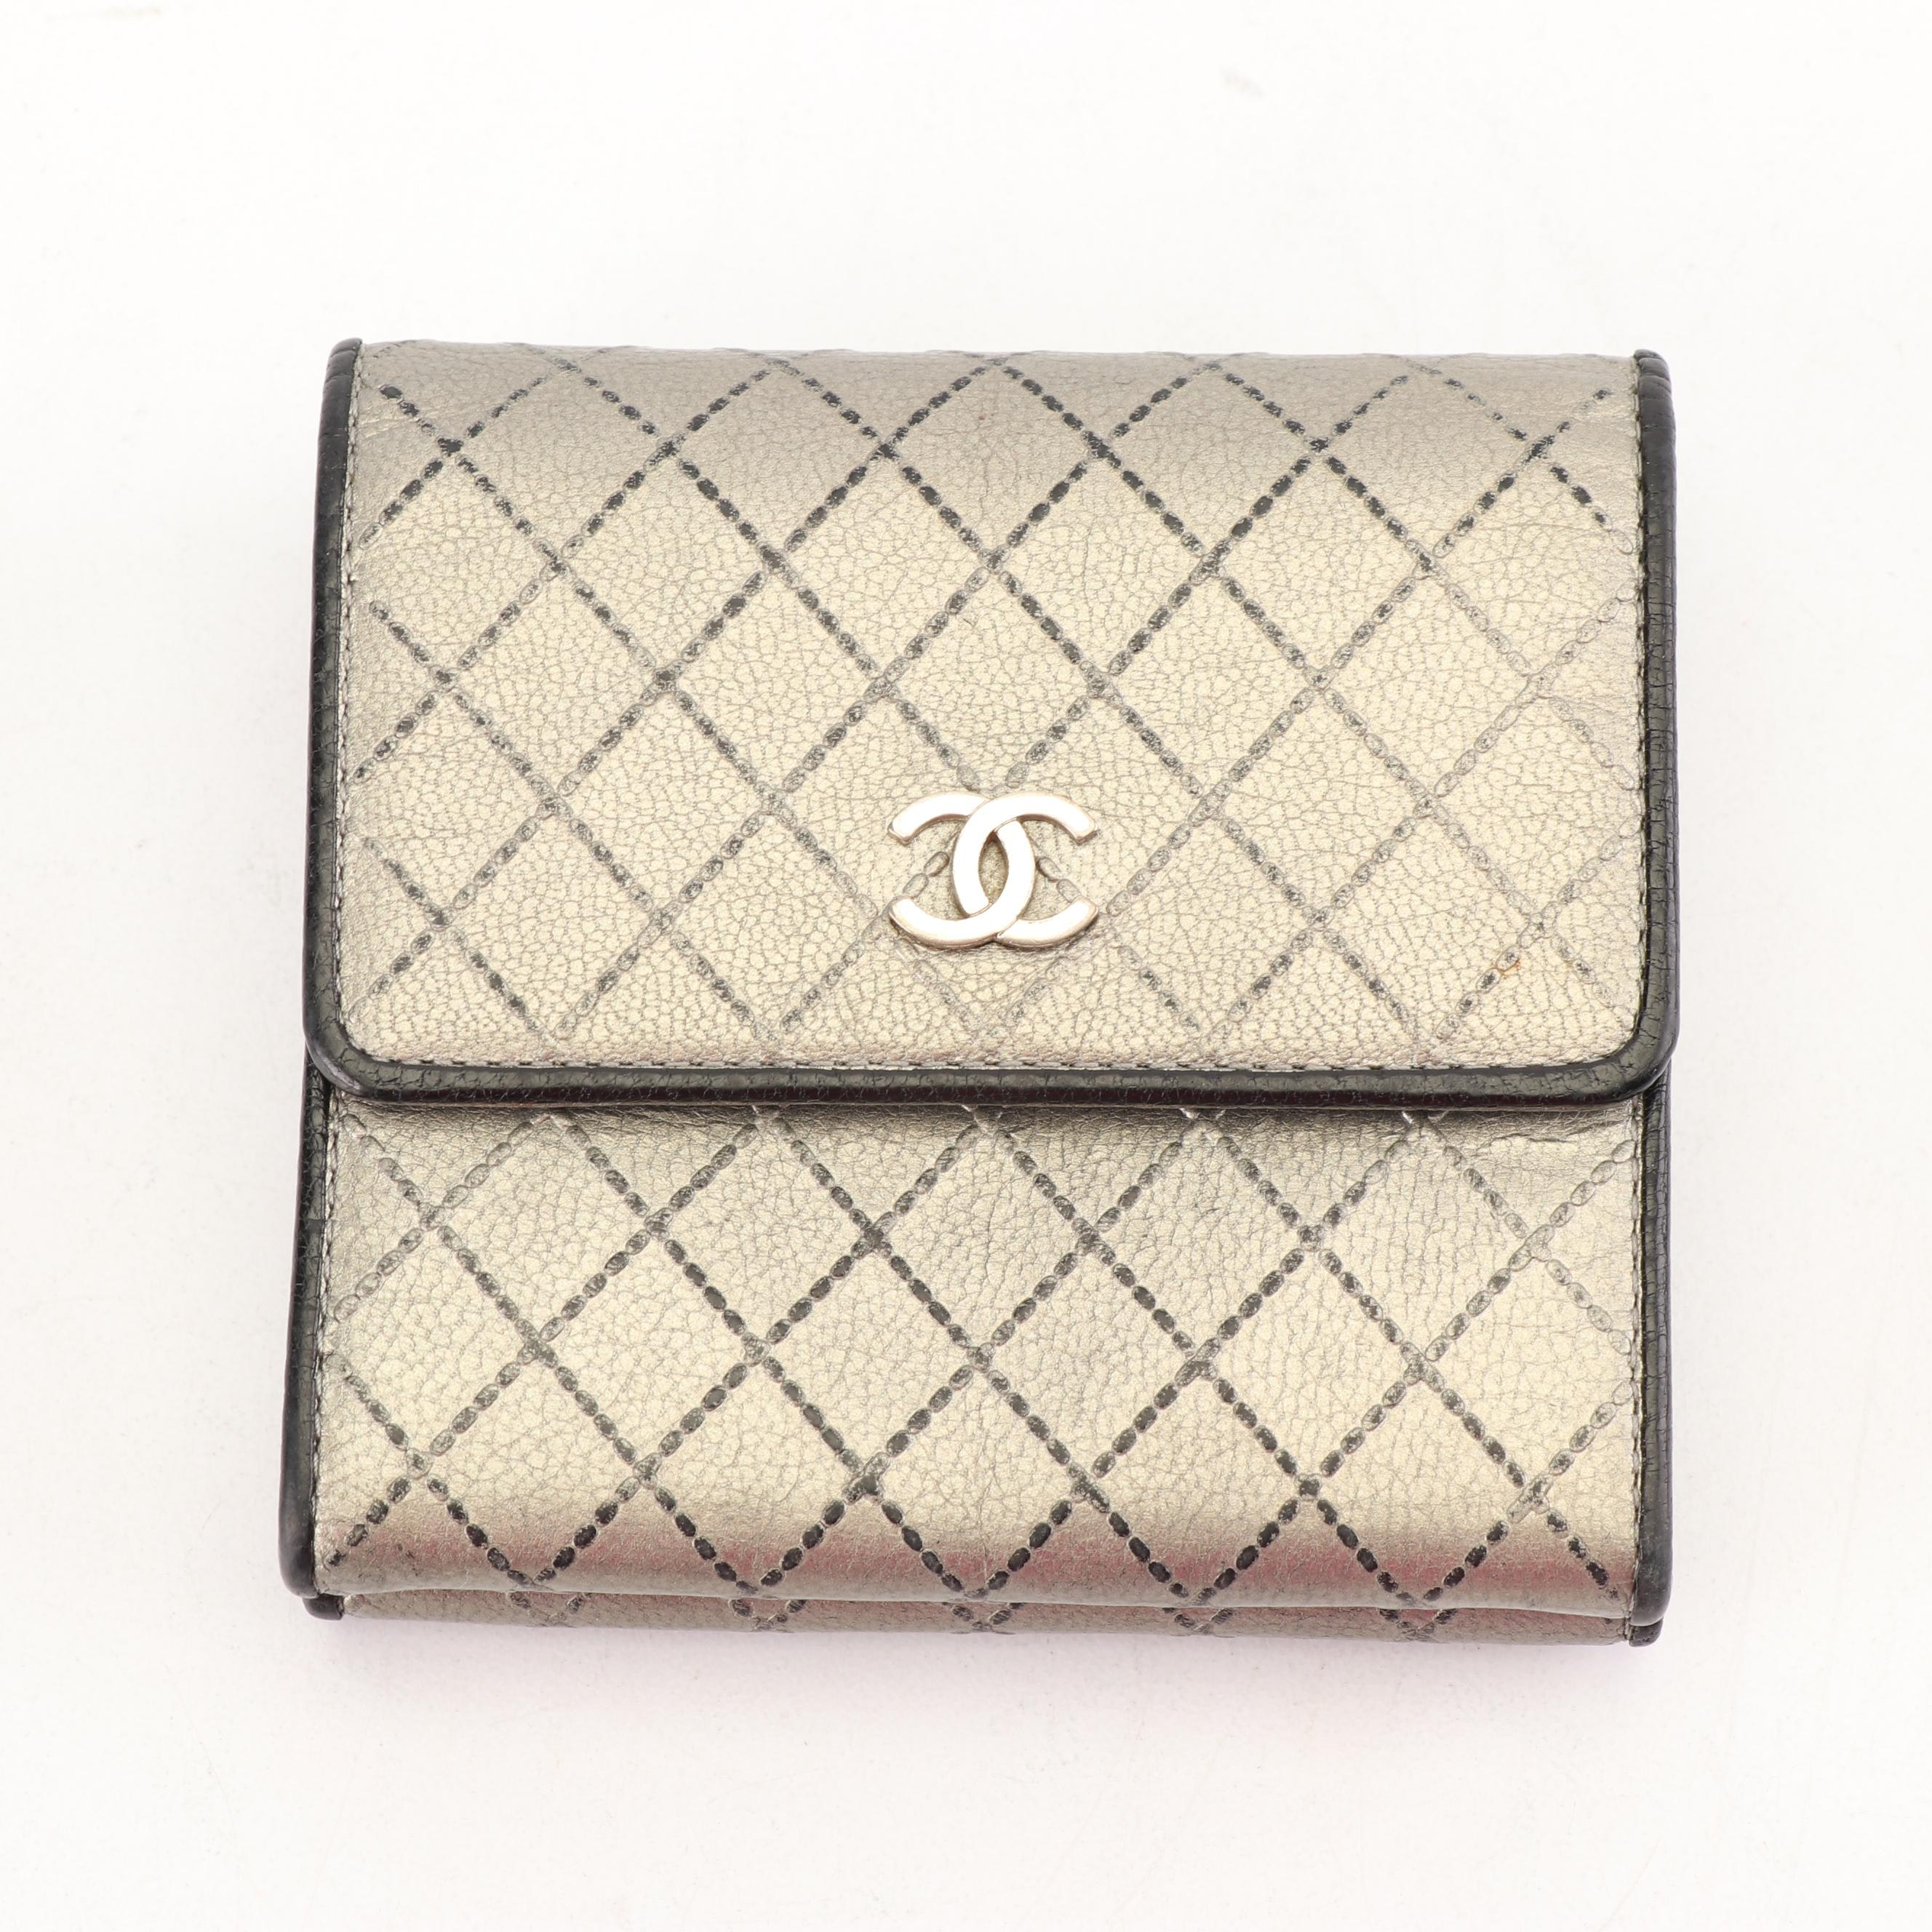 Vintage Chanel Quilted Pattern Metallic Lambskin Double-Sided Wallet